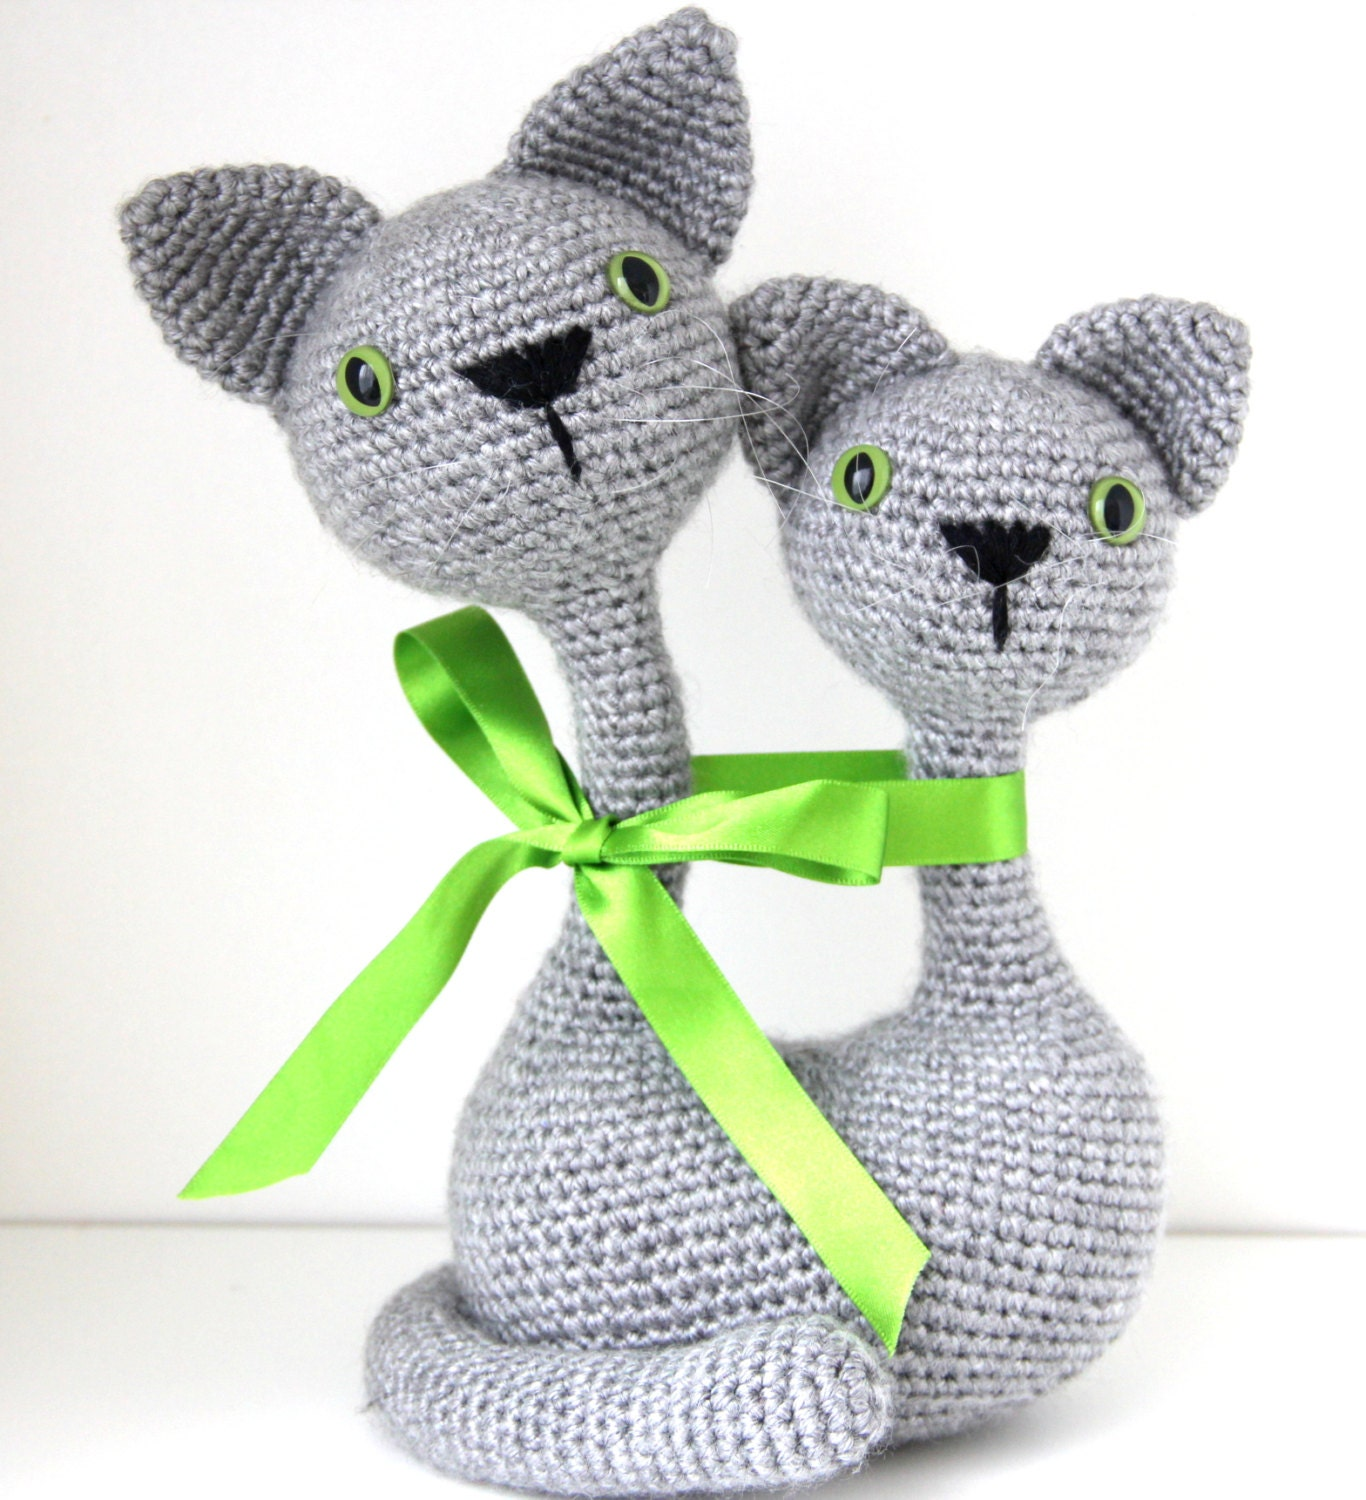 amigurumi katze sch ne katze h keln von lavendergiraffatoys auf etsy. Black Bedroom Furniture Sets. Home Design Ideas